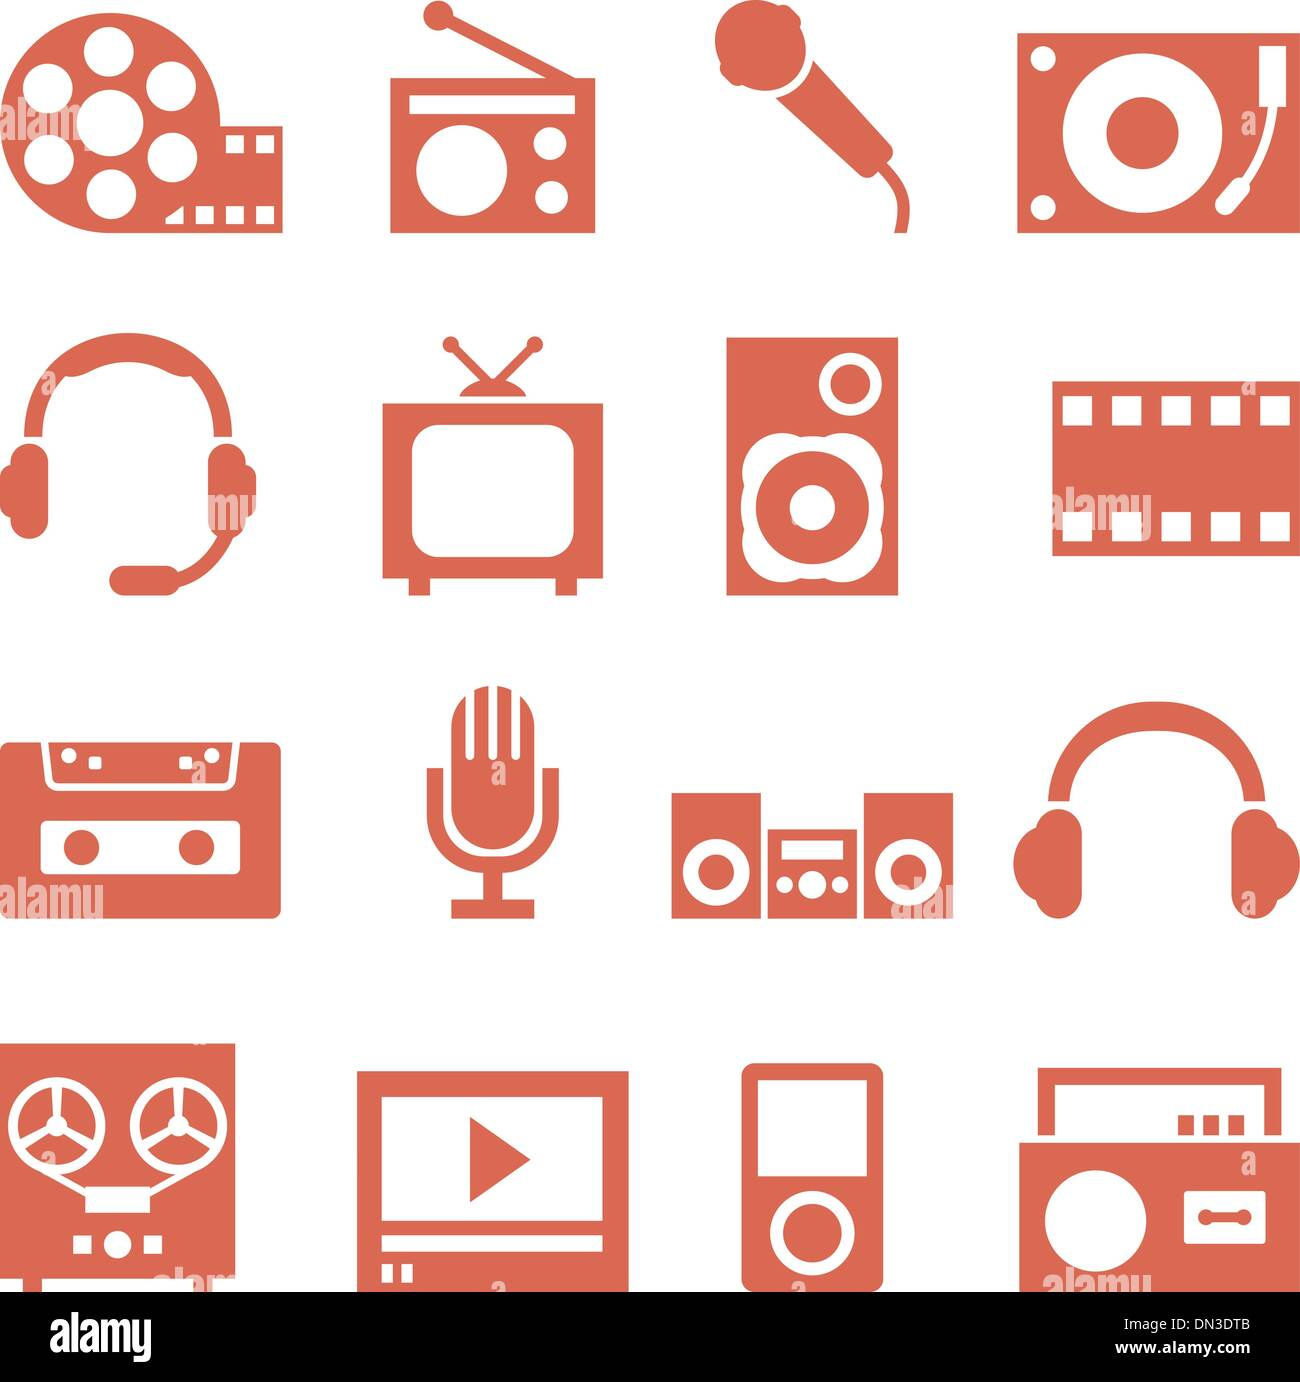 Icon set of gadgets and devices in a retro style. - Stock Image